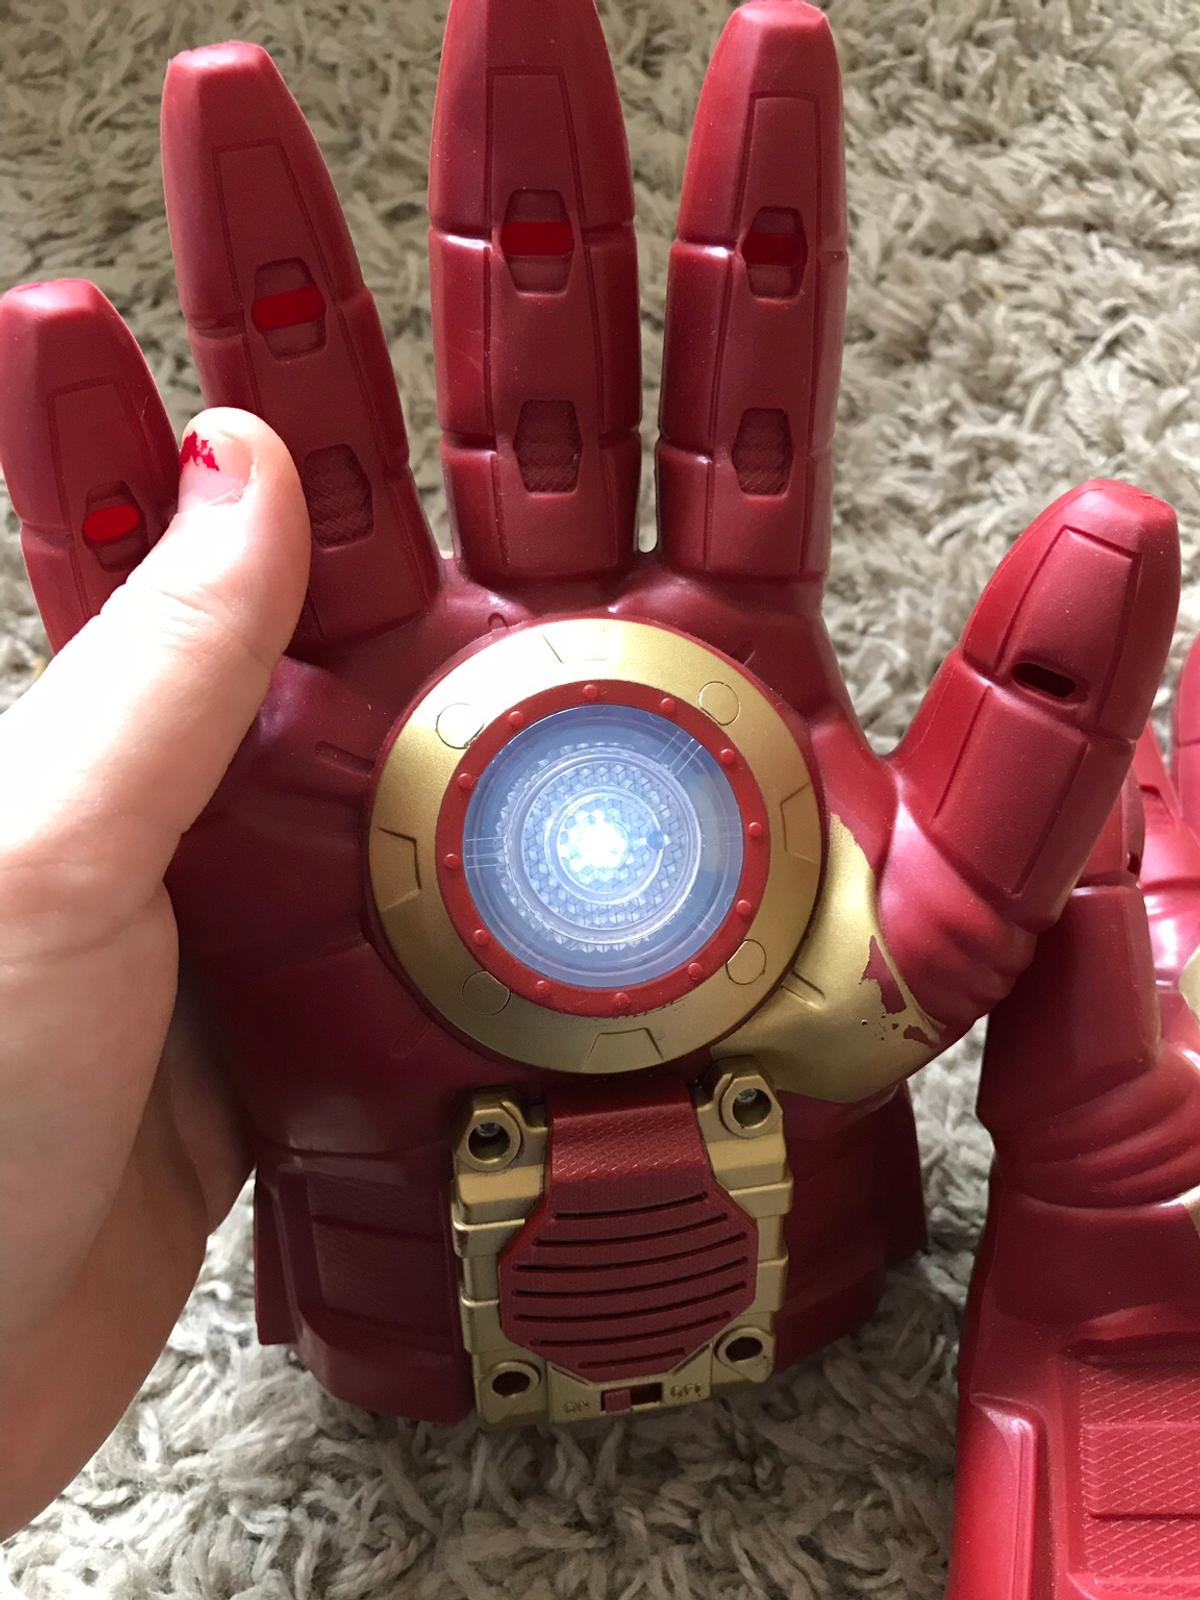 Iron man hands in B98 Redditch for £5 00 for sale - Shpock